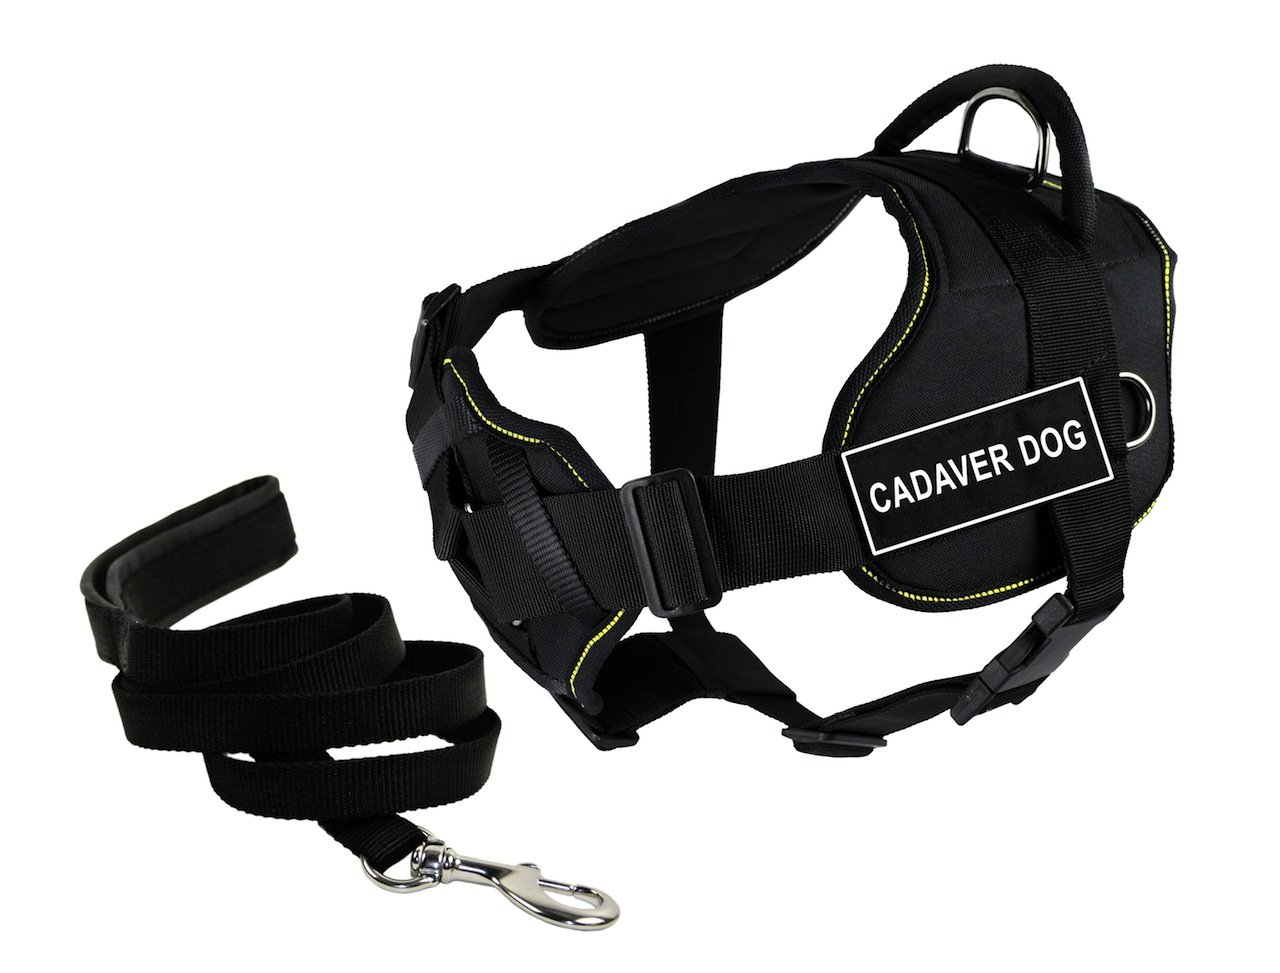 Dean & Tyler Bundle of 22 to 27-Inch DT Fun Harness with Chest Support and 6-Feet Stainless Snap Padded Puppy Leash, Cadaver Dog, Black with Yellow Trim